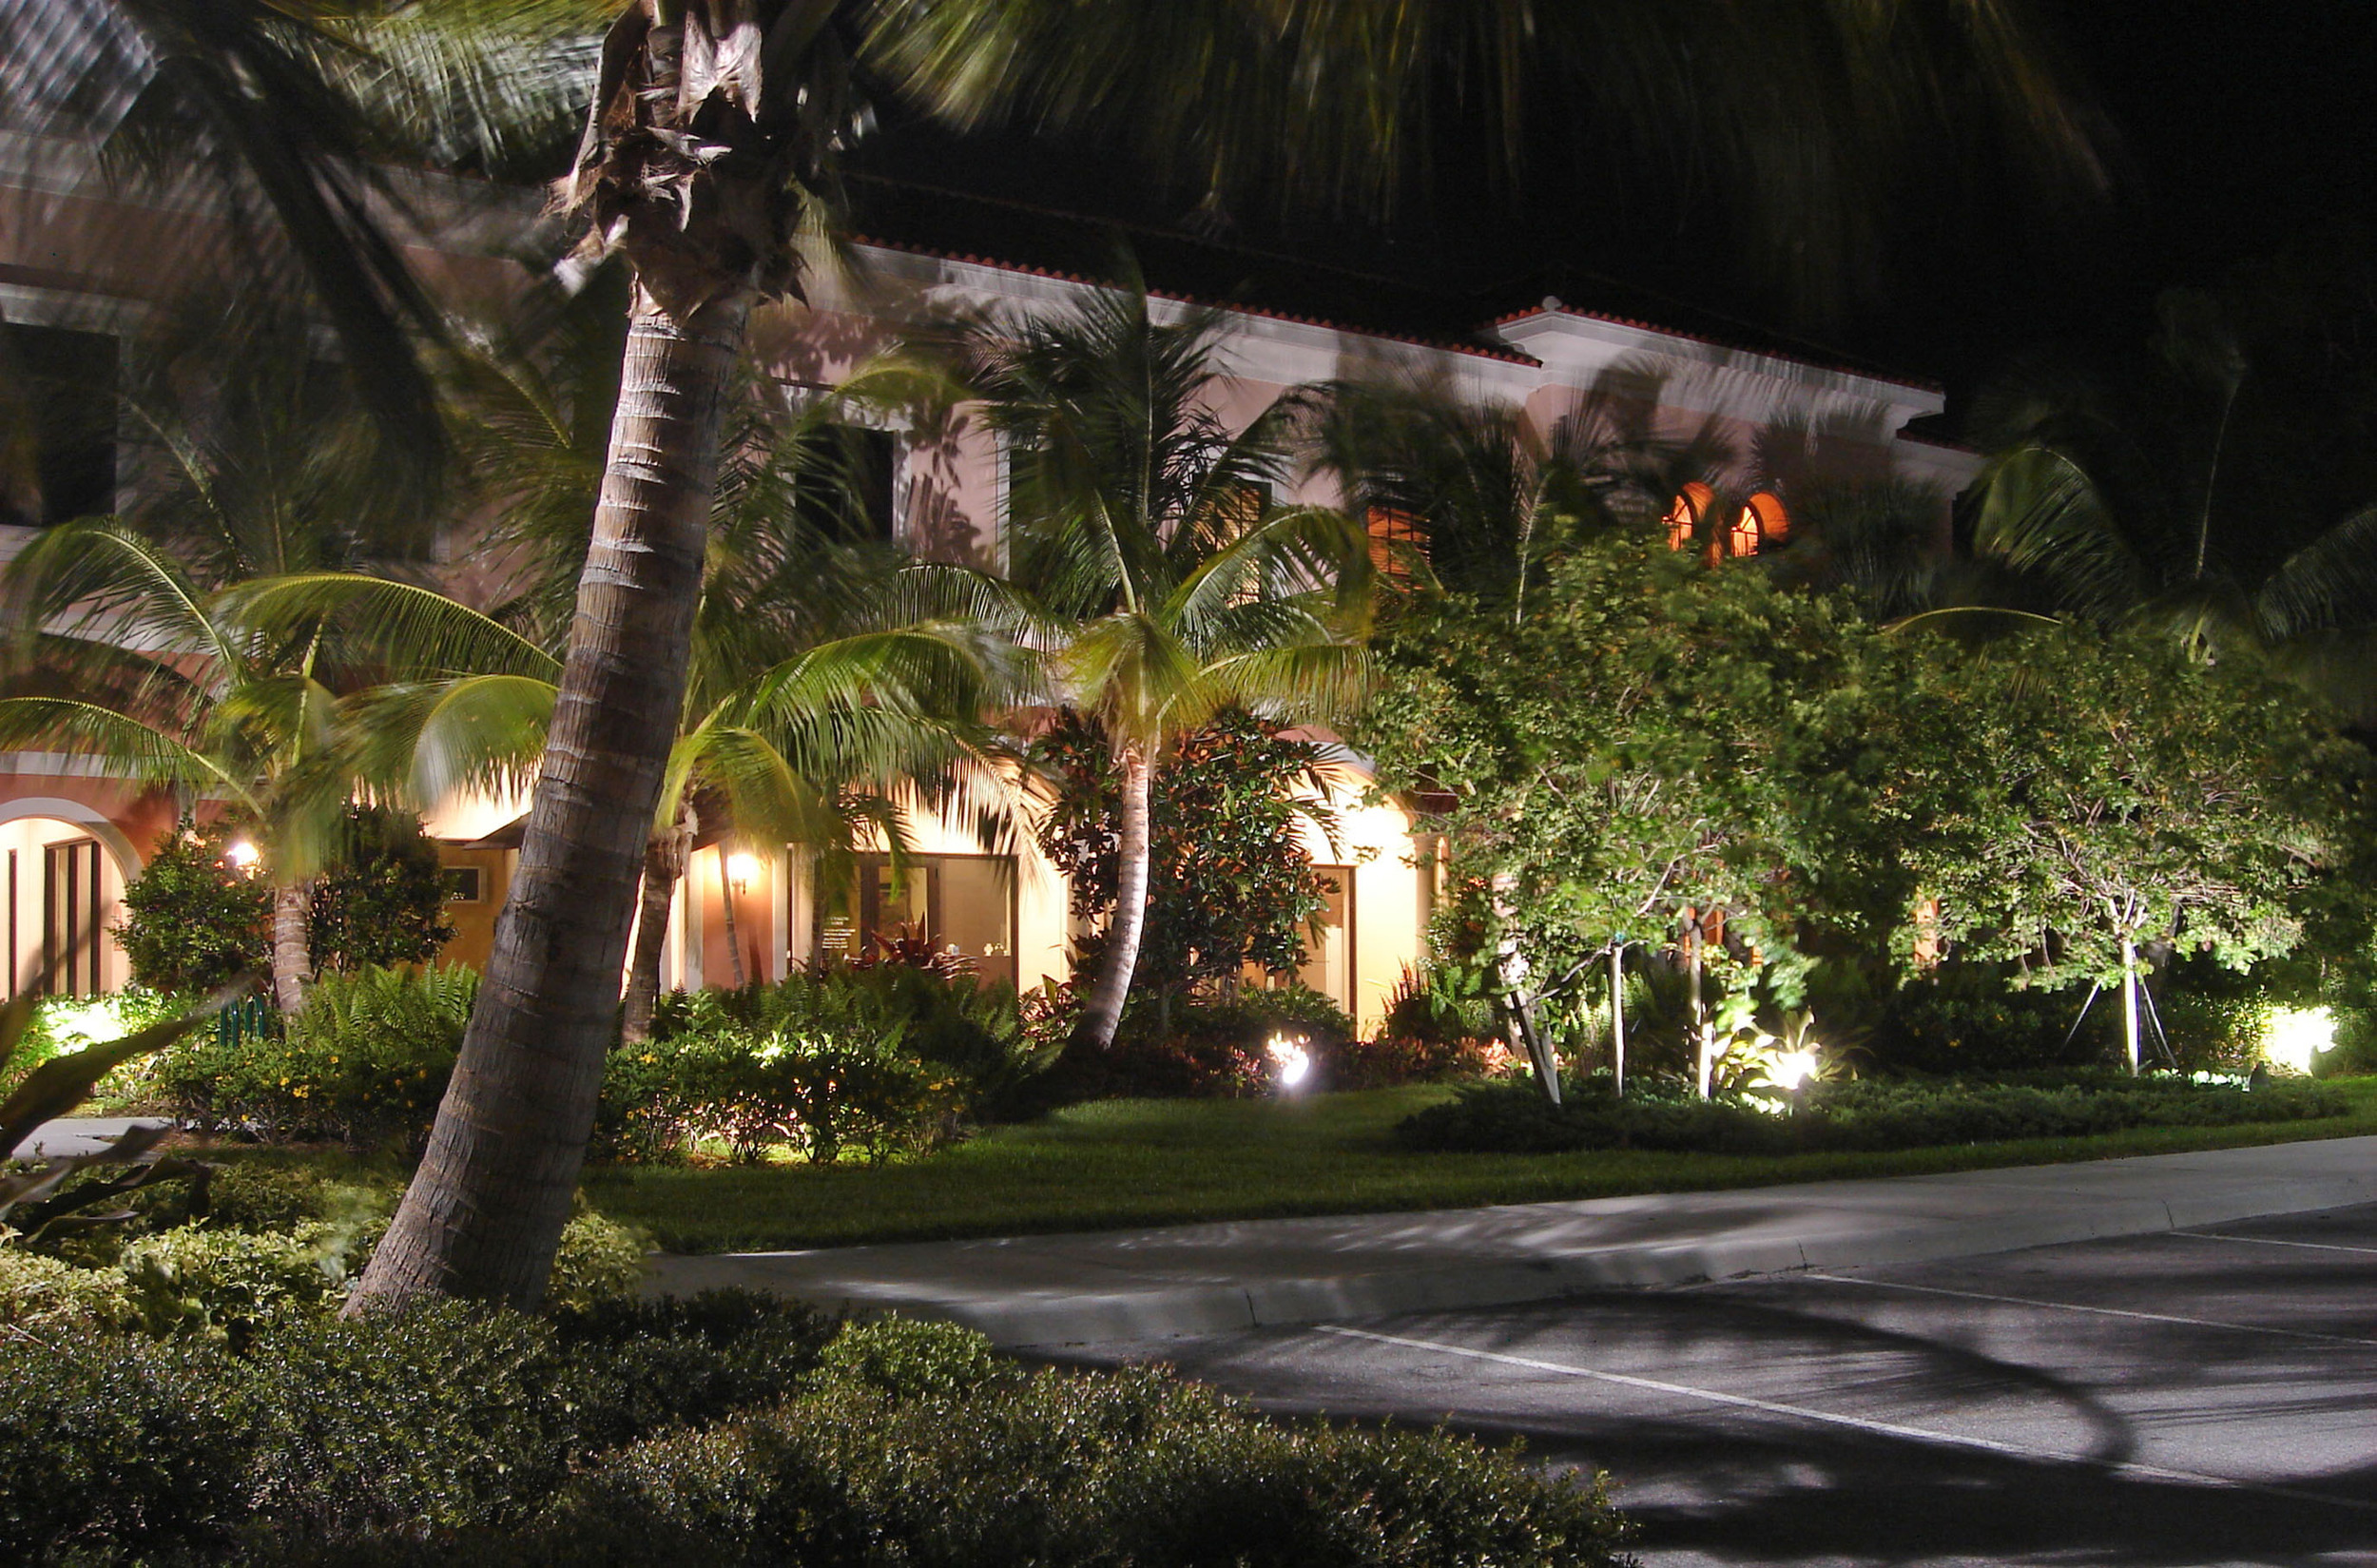 University Commons Abacoa Jupiter Night Landscape Lighting.jpg